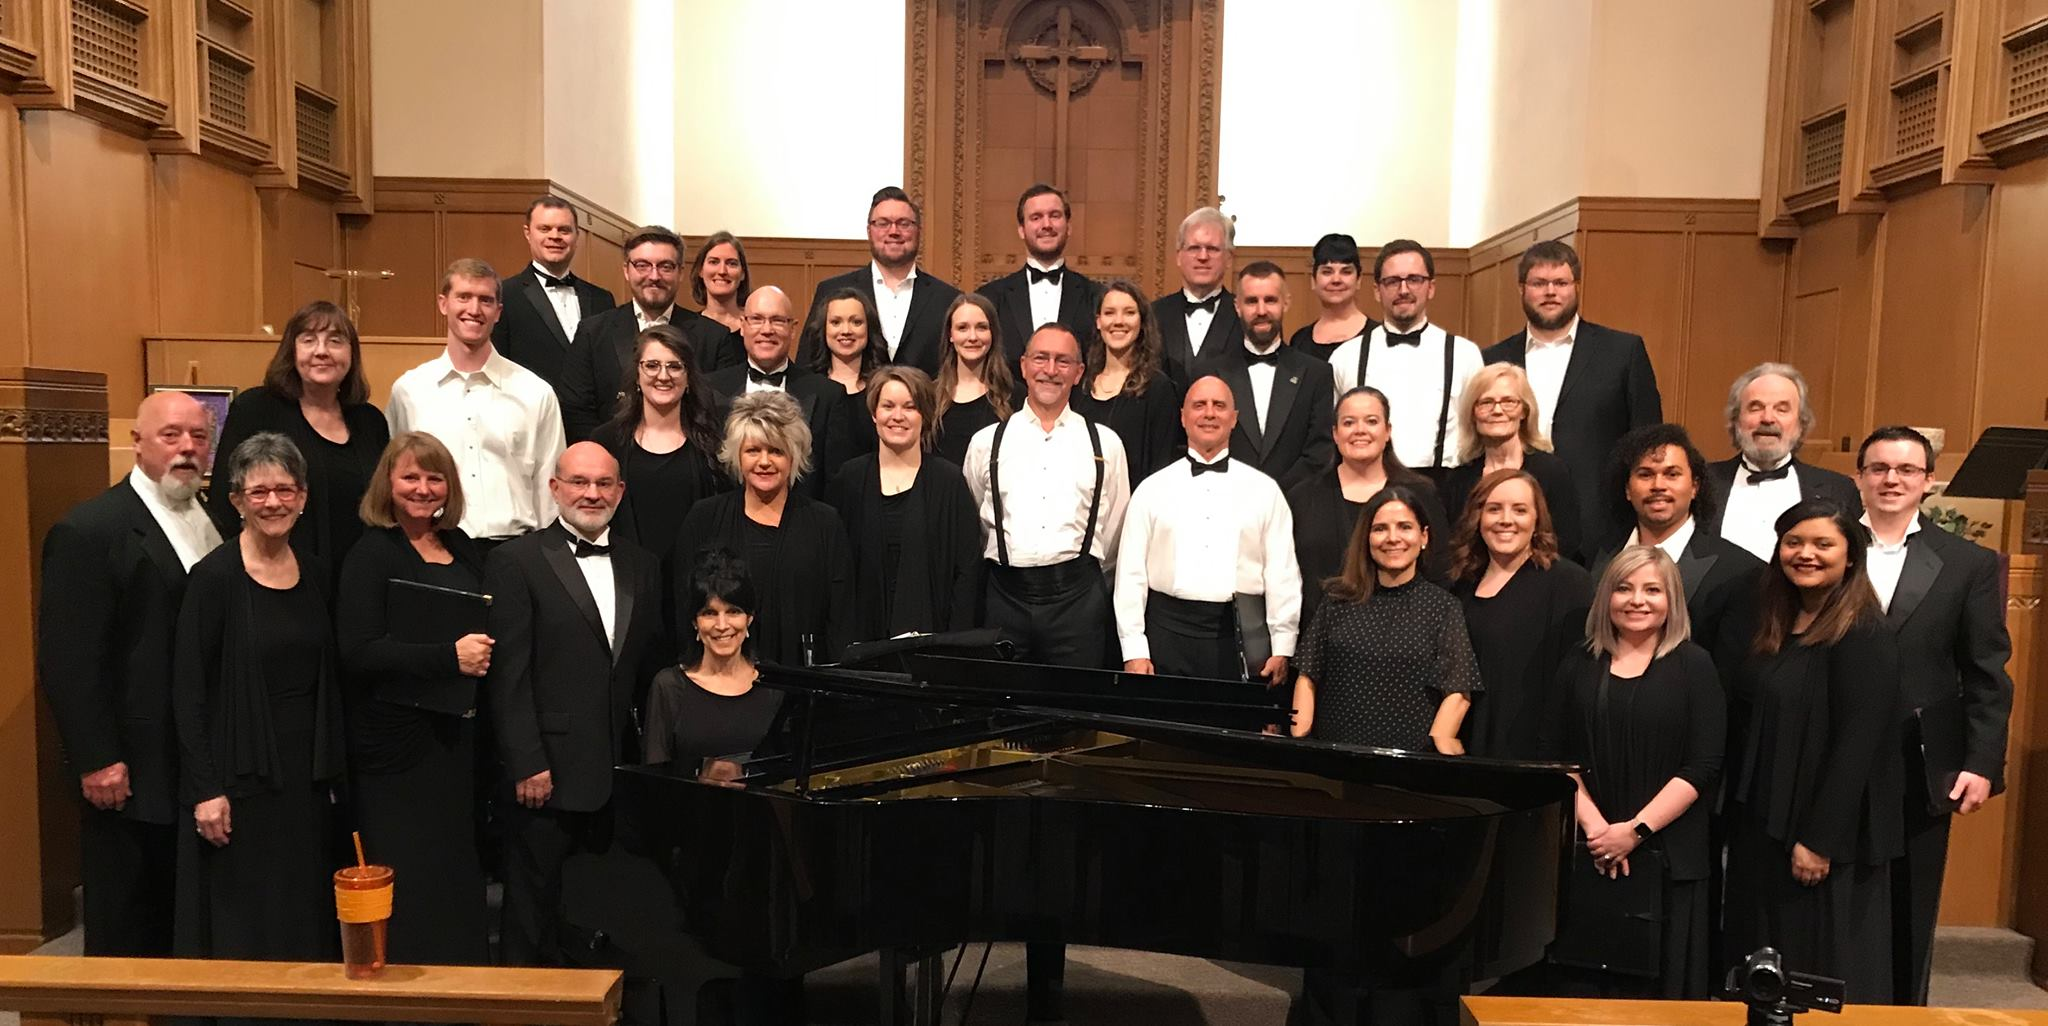 Wichita Chamber Chorale, Spring 2019, Dr Mariana Farah, Guest Conductor